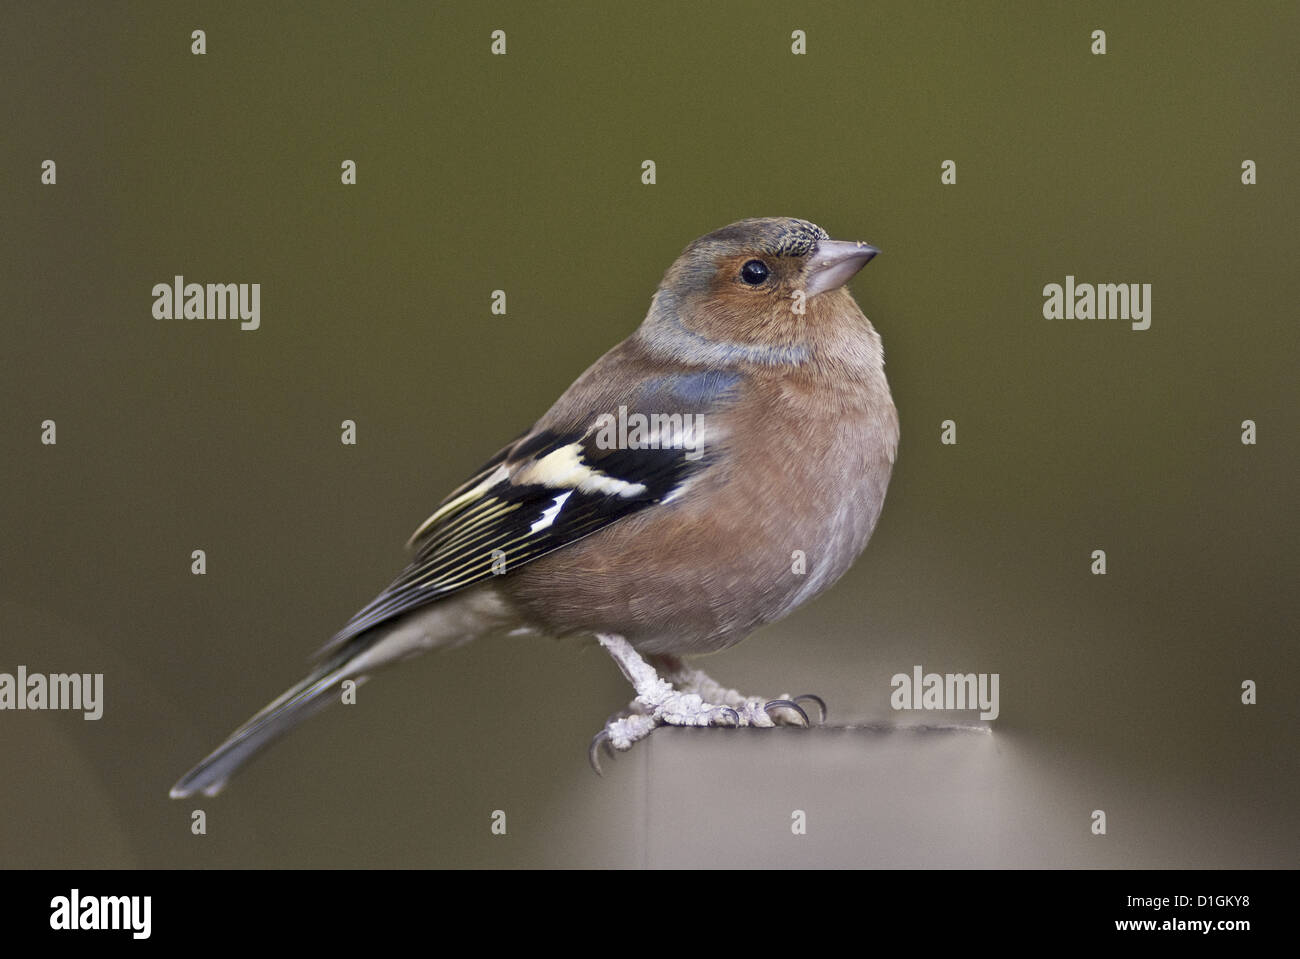 Chaffinch (Fringilla coelebs) in a woodland parkland, United Kingdom, Europe - Stock Image